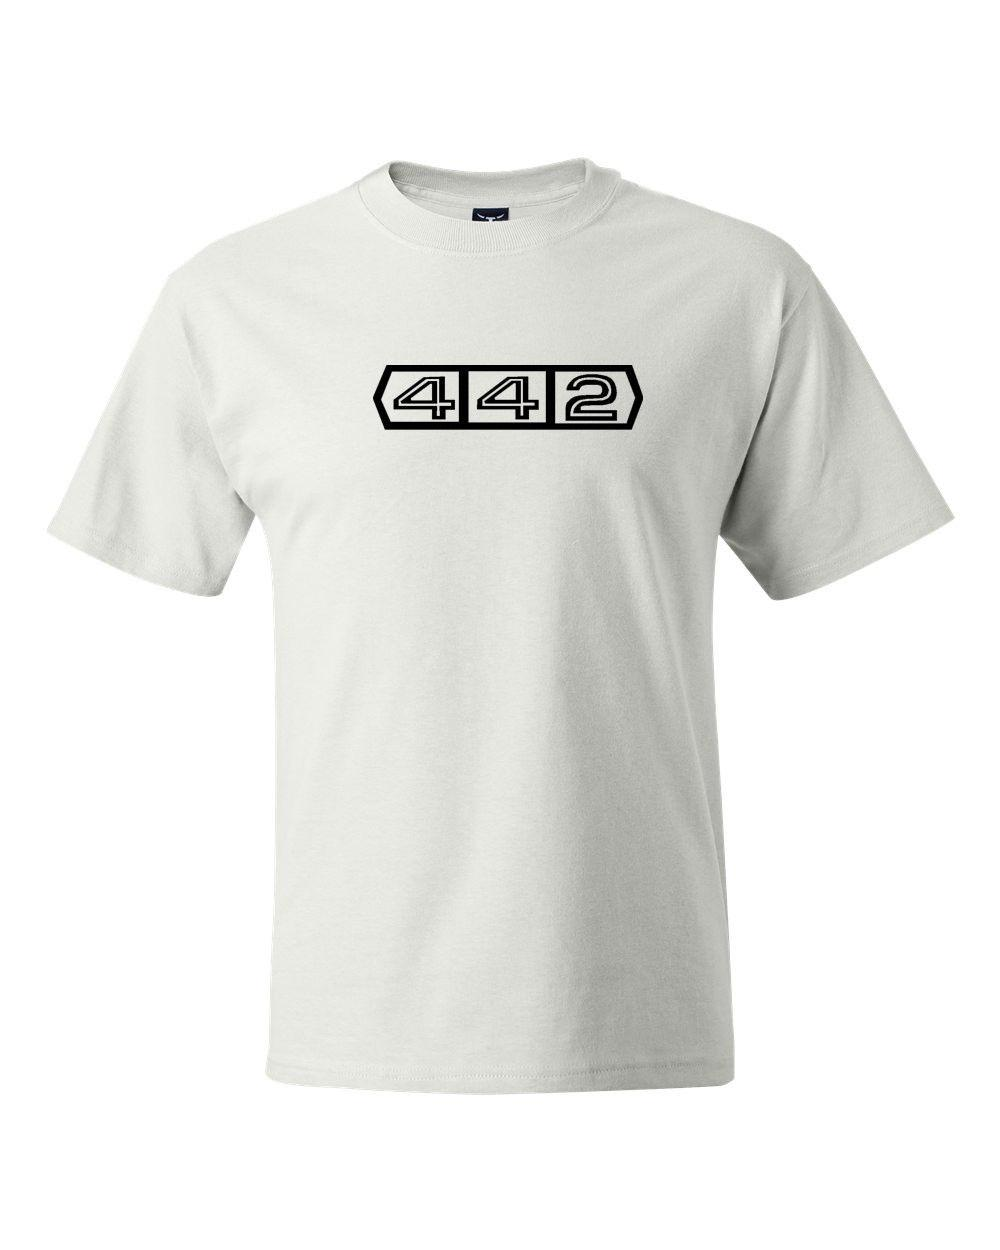 68f5ad4f1 Oldsmobile 442 Classic Vintage Car Logo T Shirts S 5XLFunny Unisex Casual  Tshirt Gift T Shirt Awesome Shirt Design From Allin1cases, $12.96|  DHgate.Com